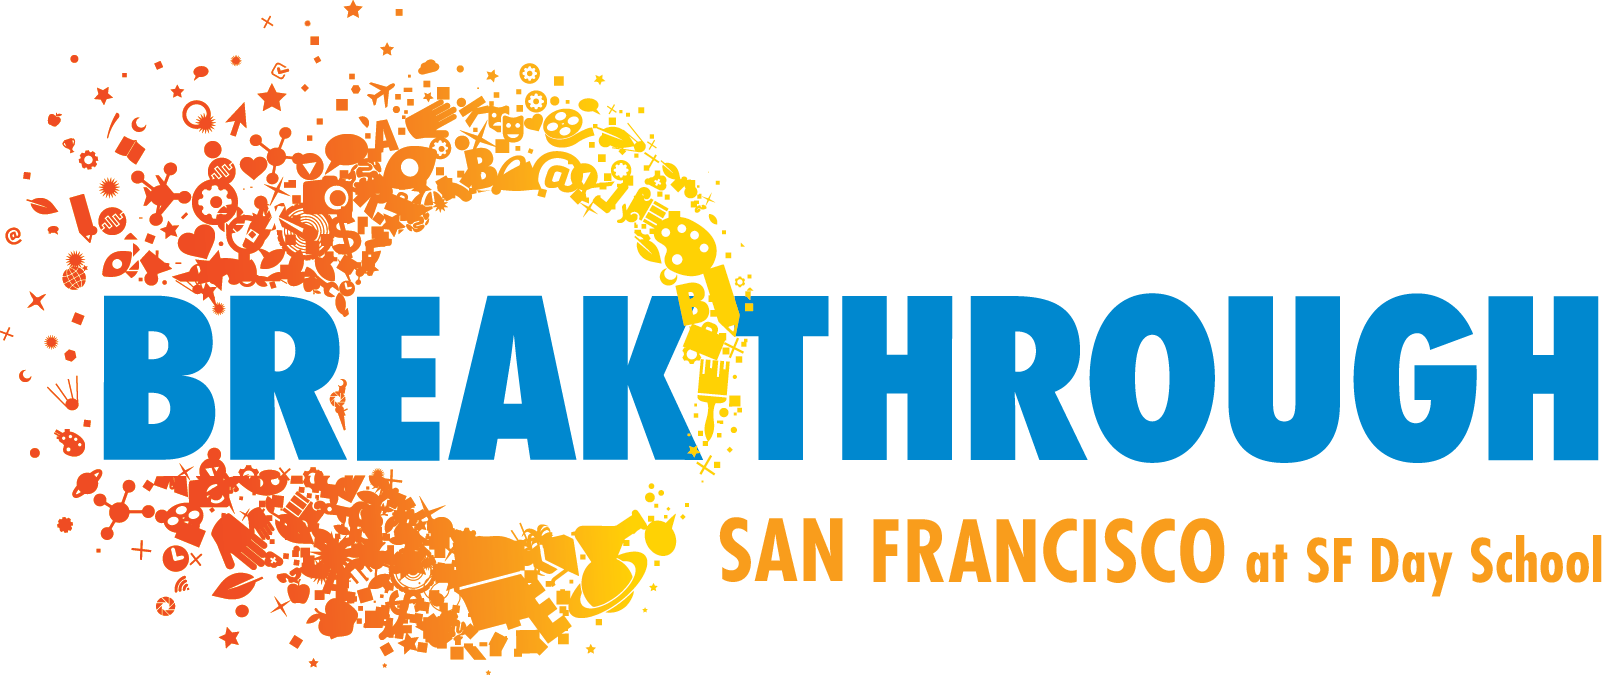 Breakthrough San Francisco